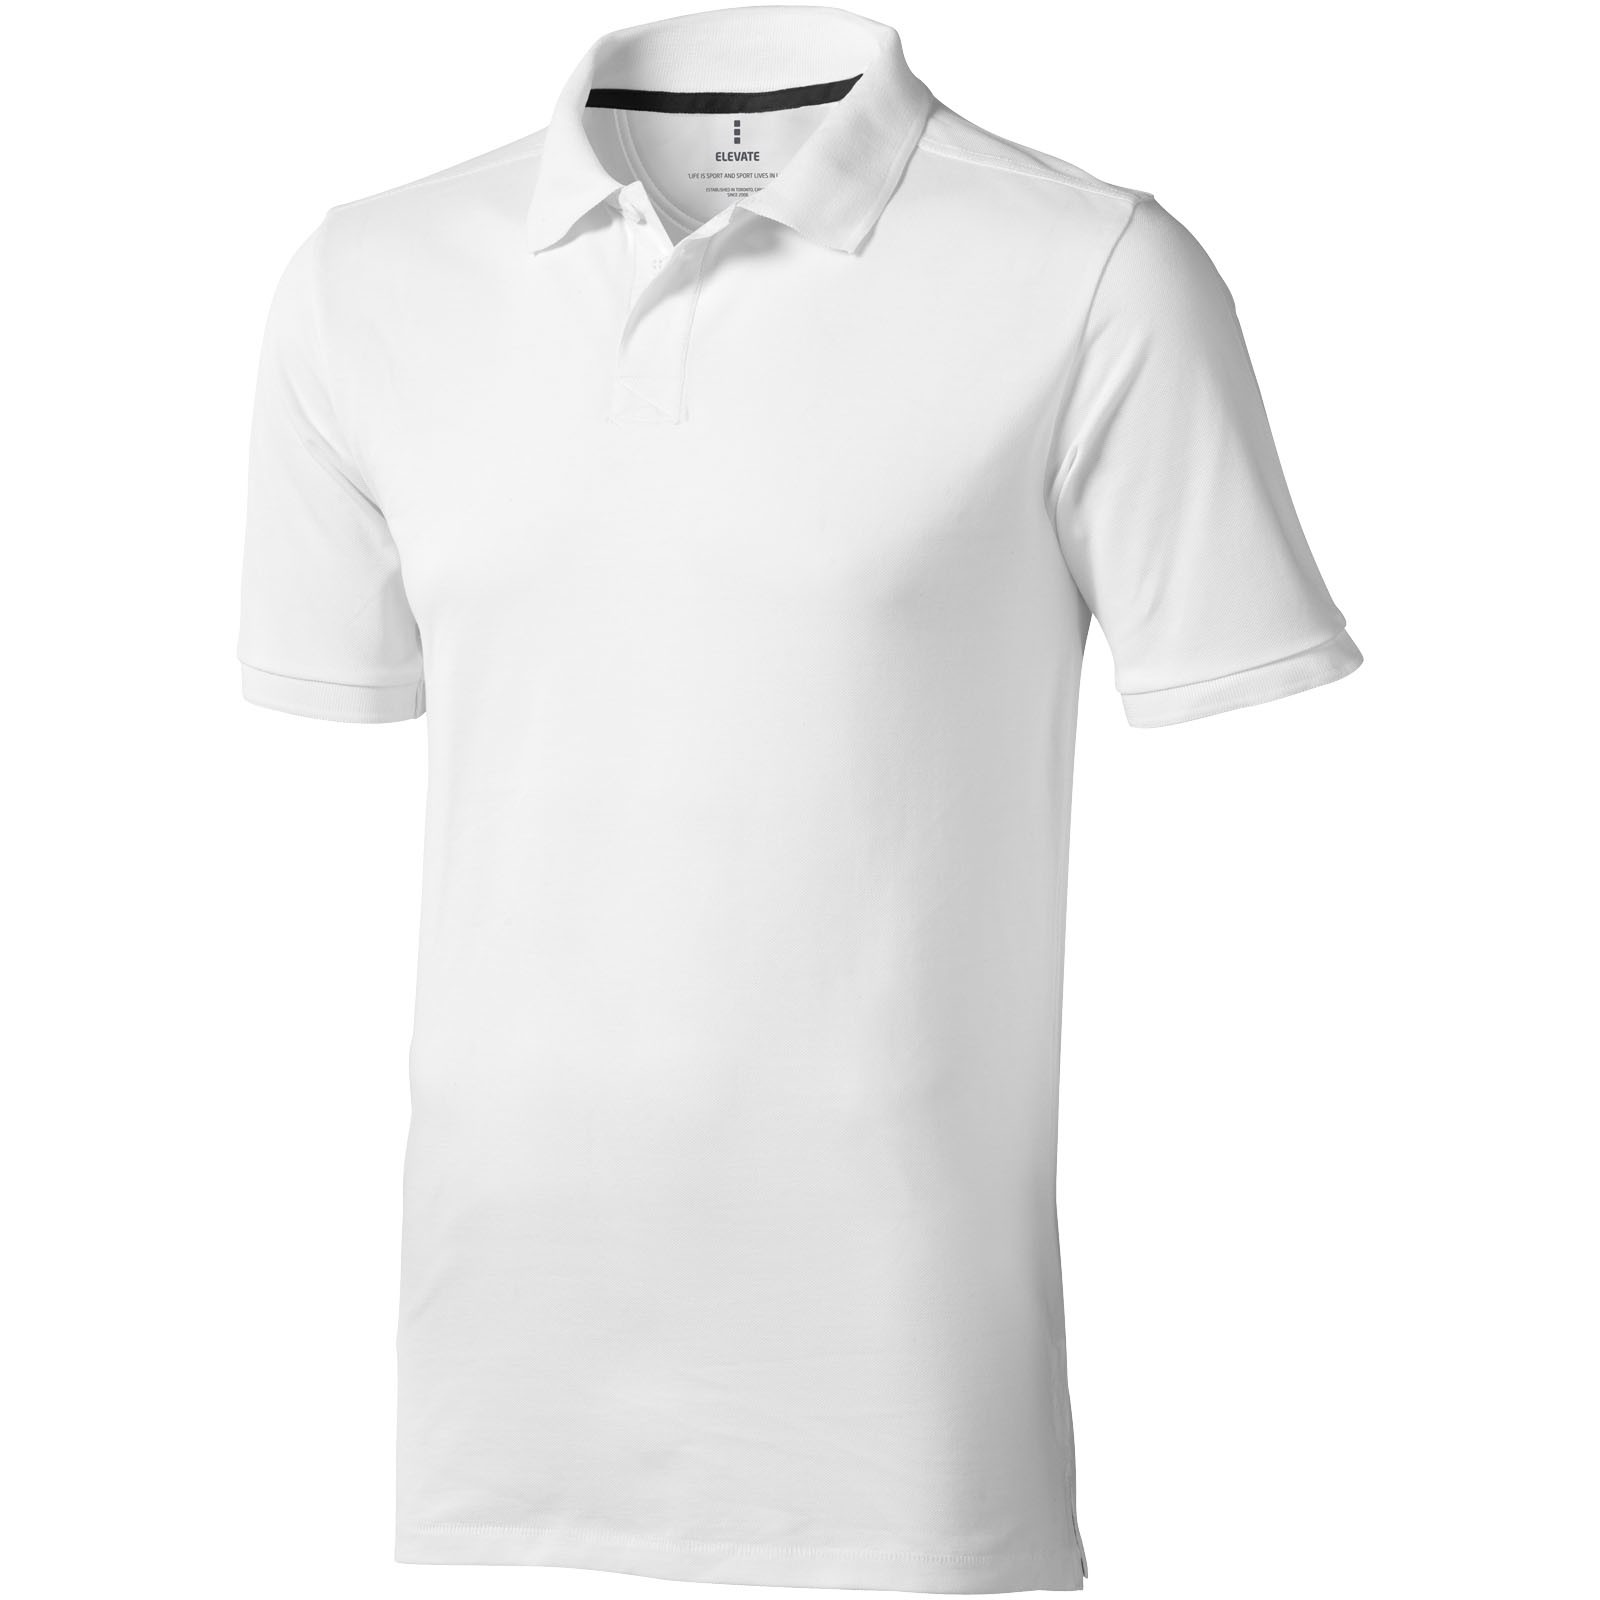 Calgary short sleeve men's polo - White / S